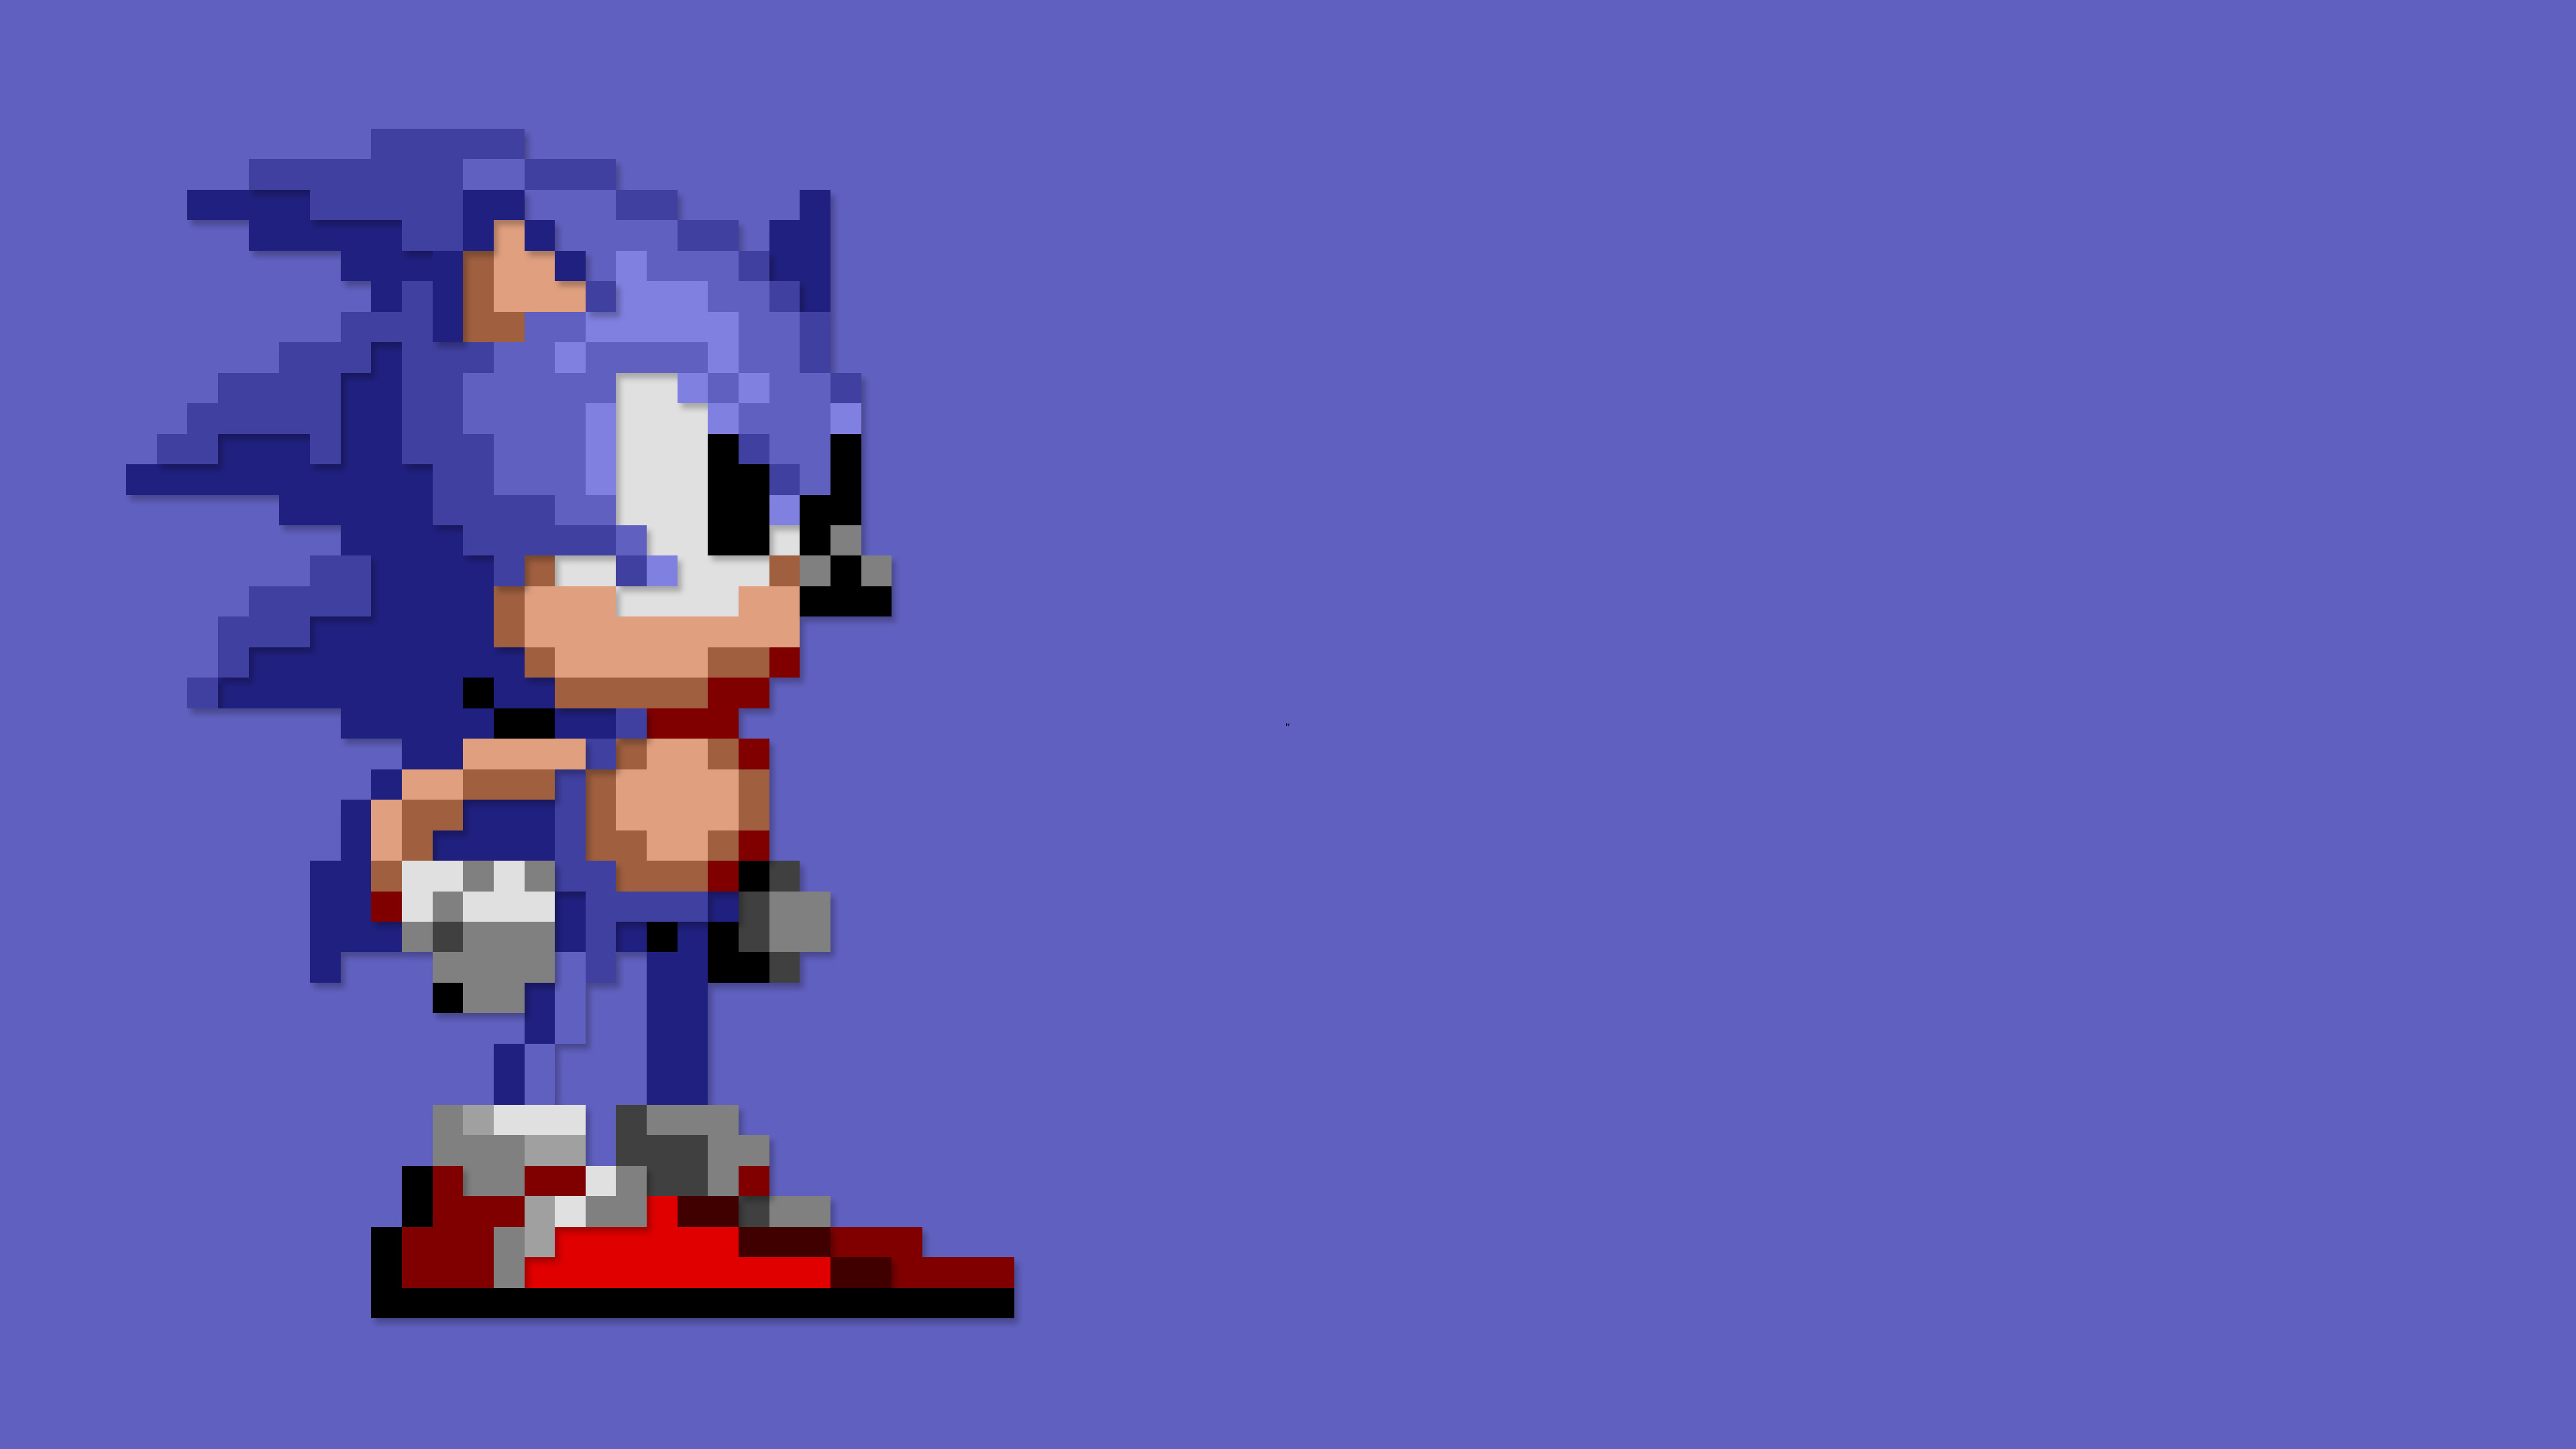 Res: 3840x2160, ... 16-Bit Sonic the Hedgehog Wallpaper by BlakeDH